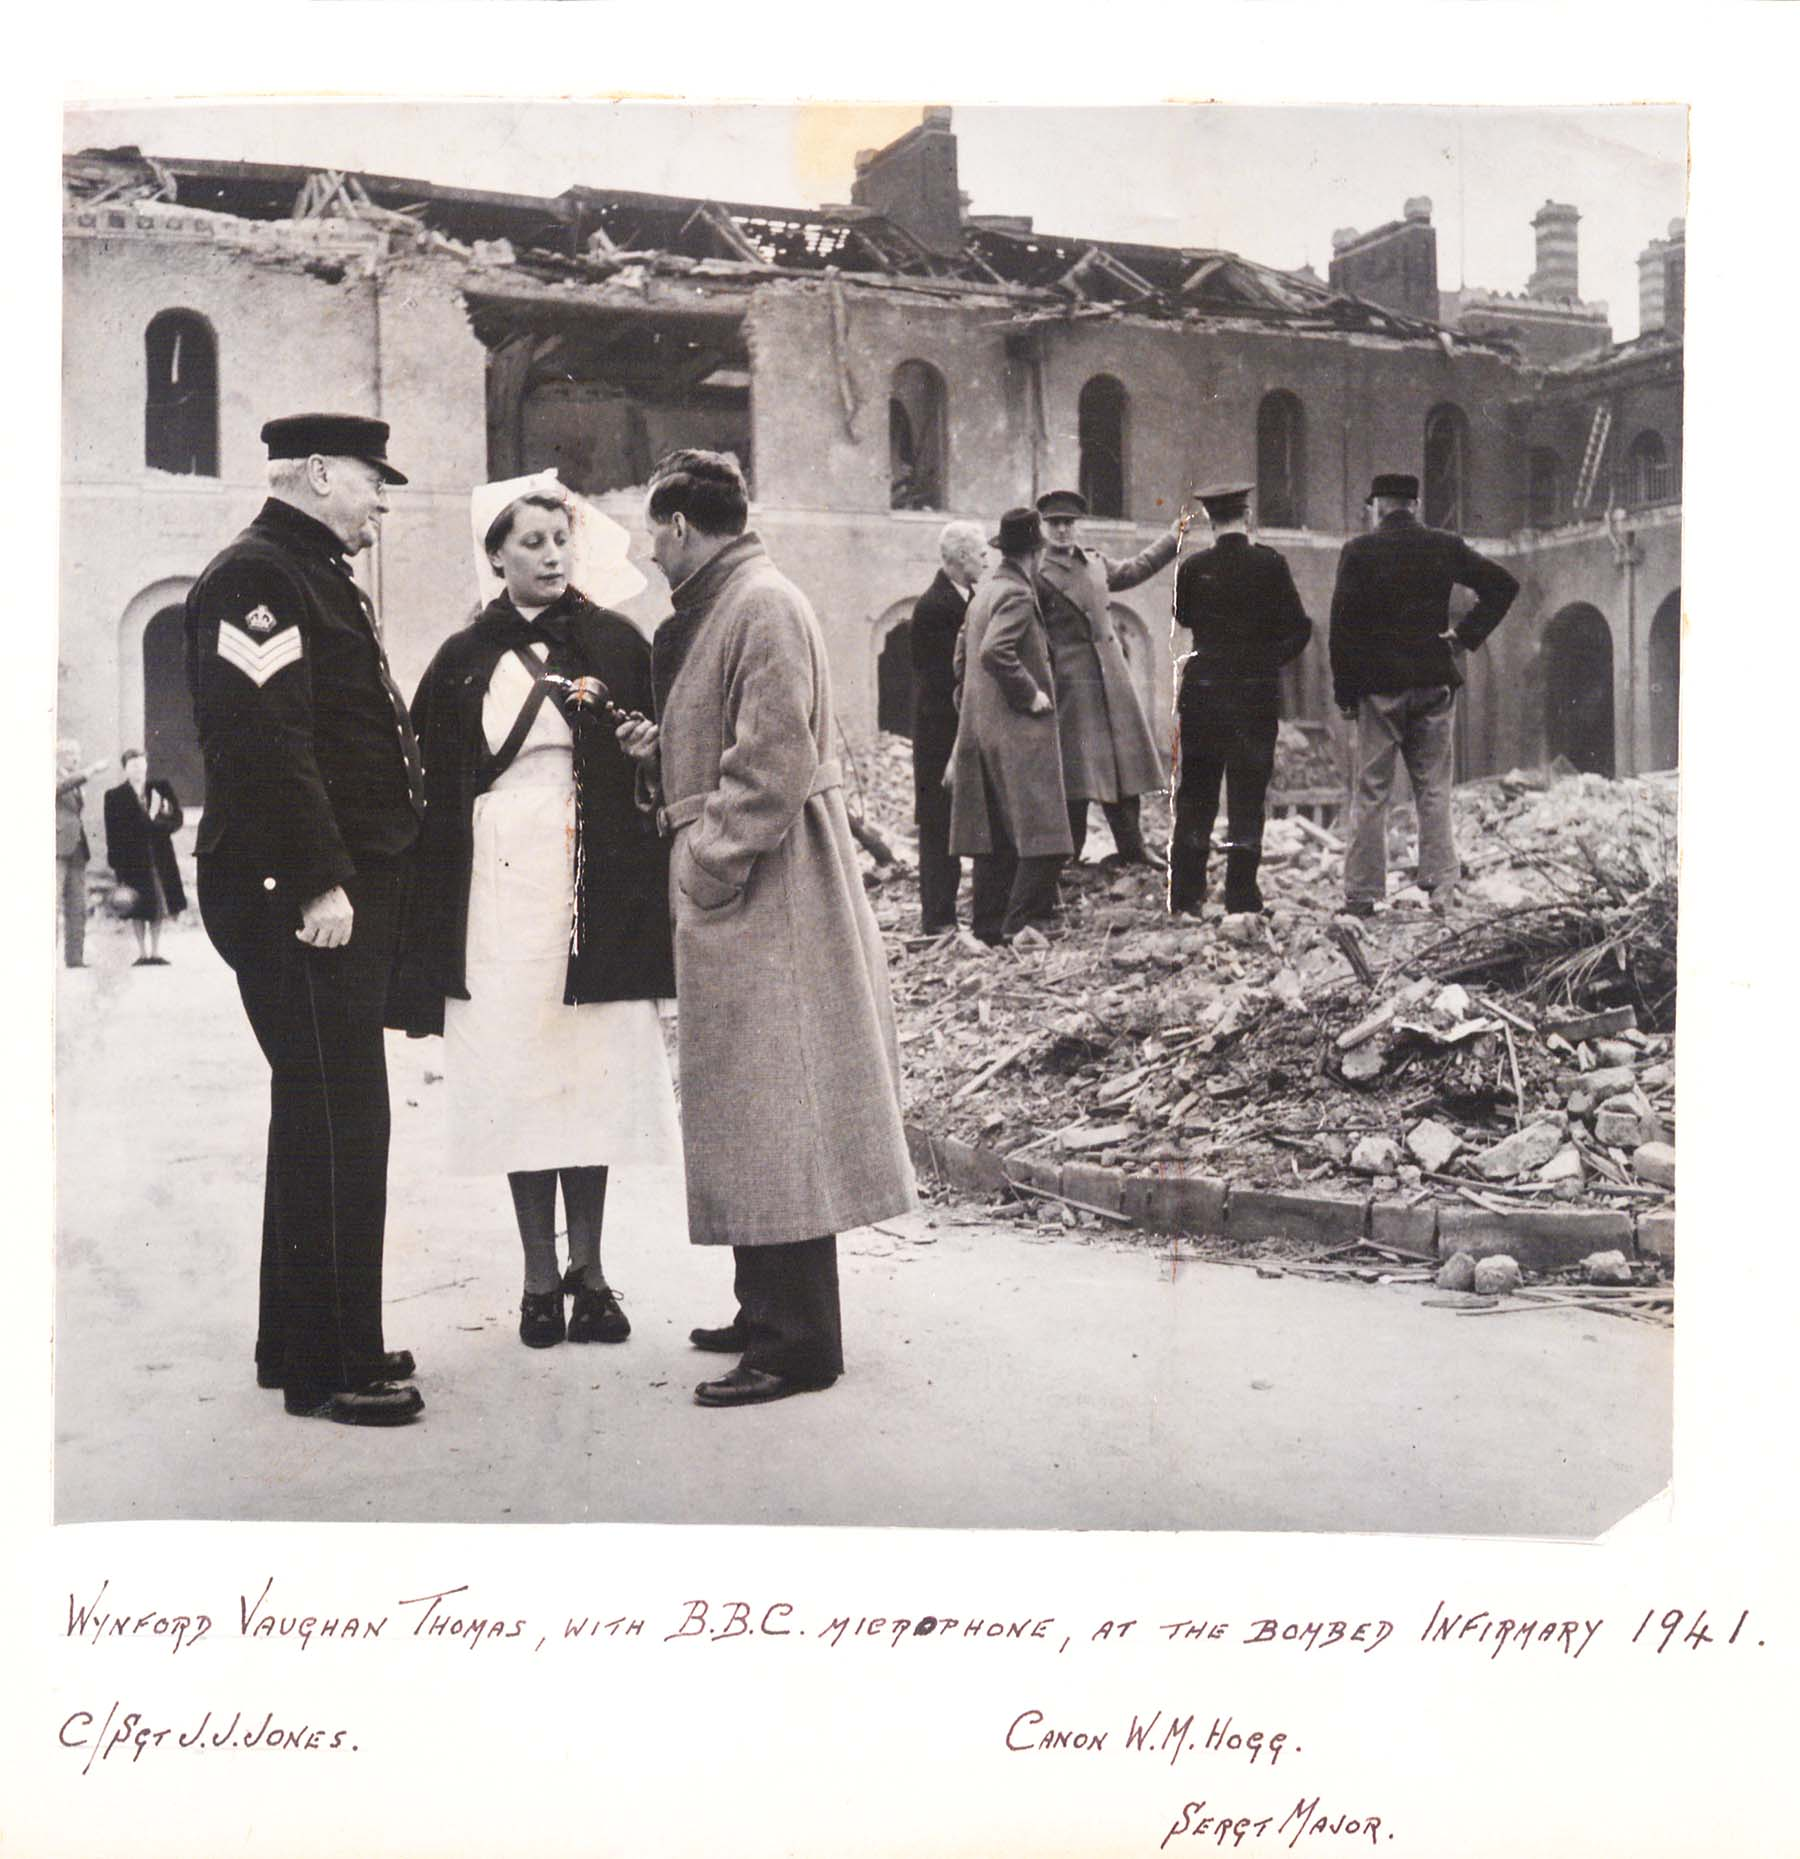 A nurse and the Royal Hospital's Chaplain, Cannon Hogg, talk to a BBC reporter in the aftermath of the bomb.